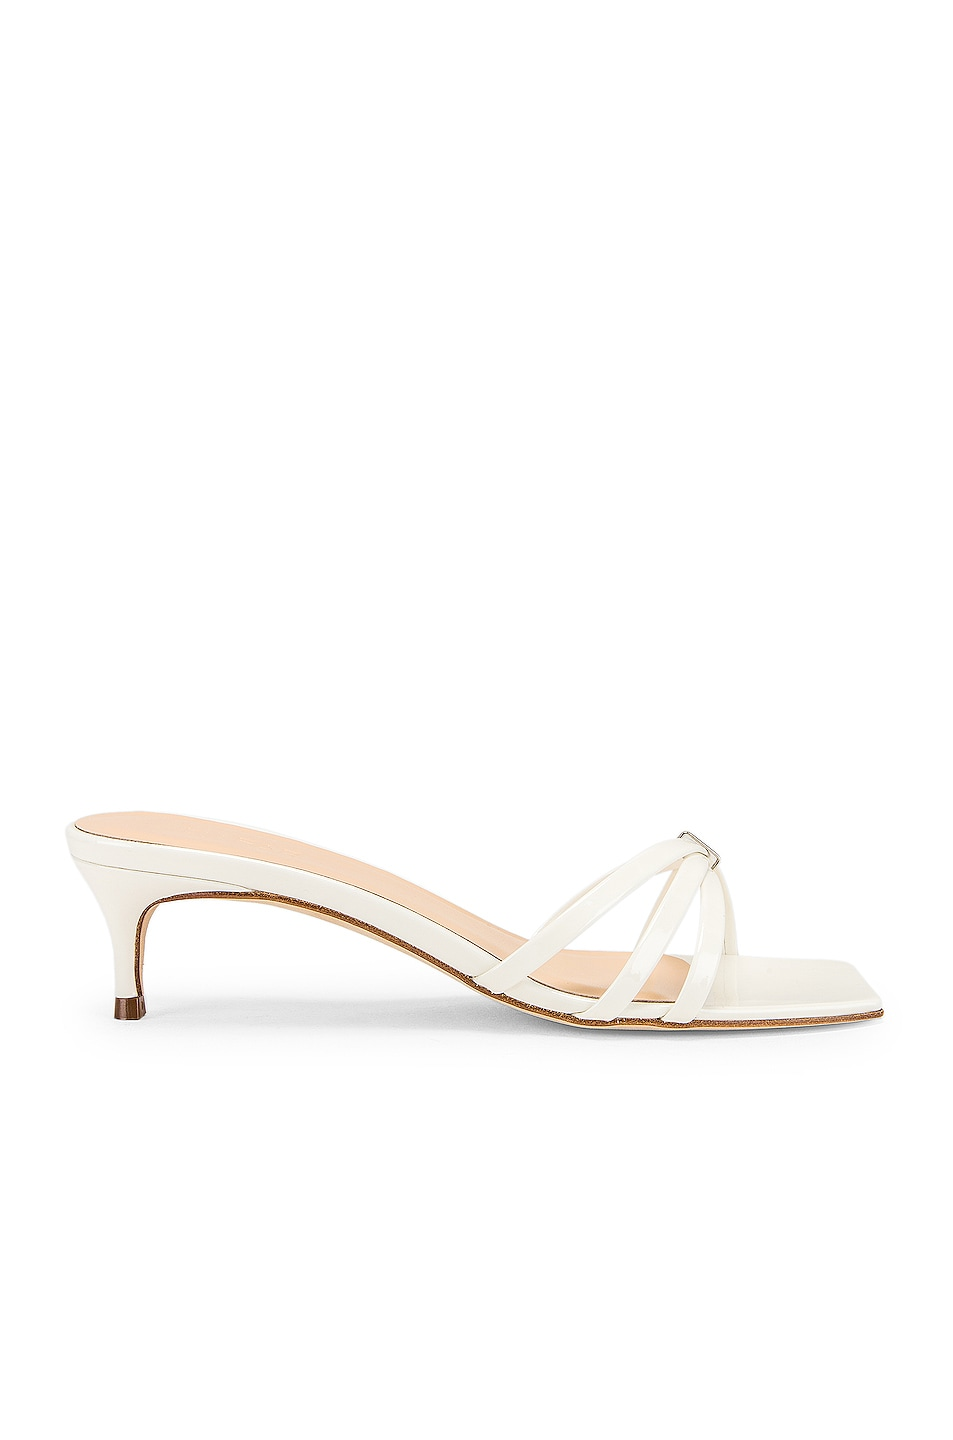 Image 1 of By Far Libra Sandal in White Patent Leather